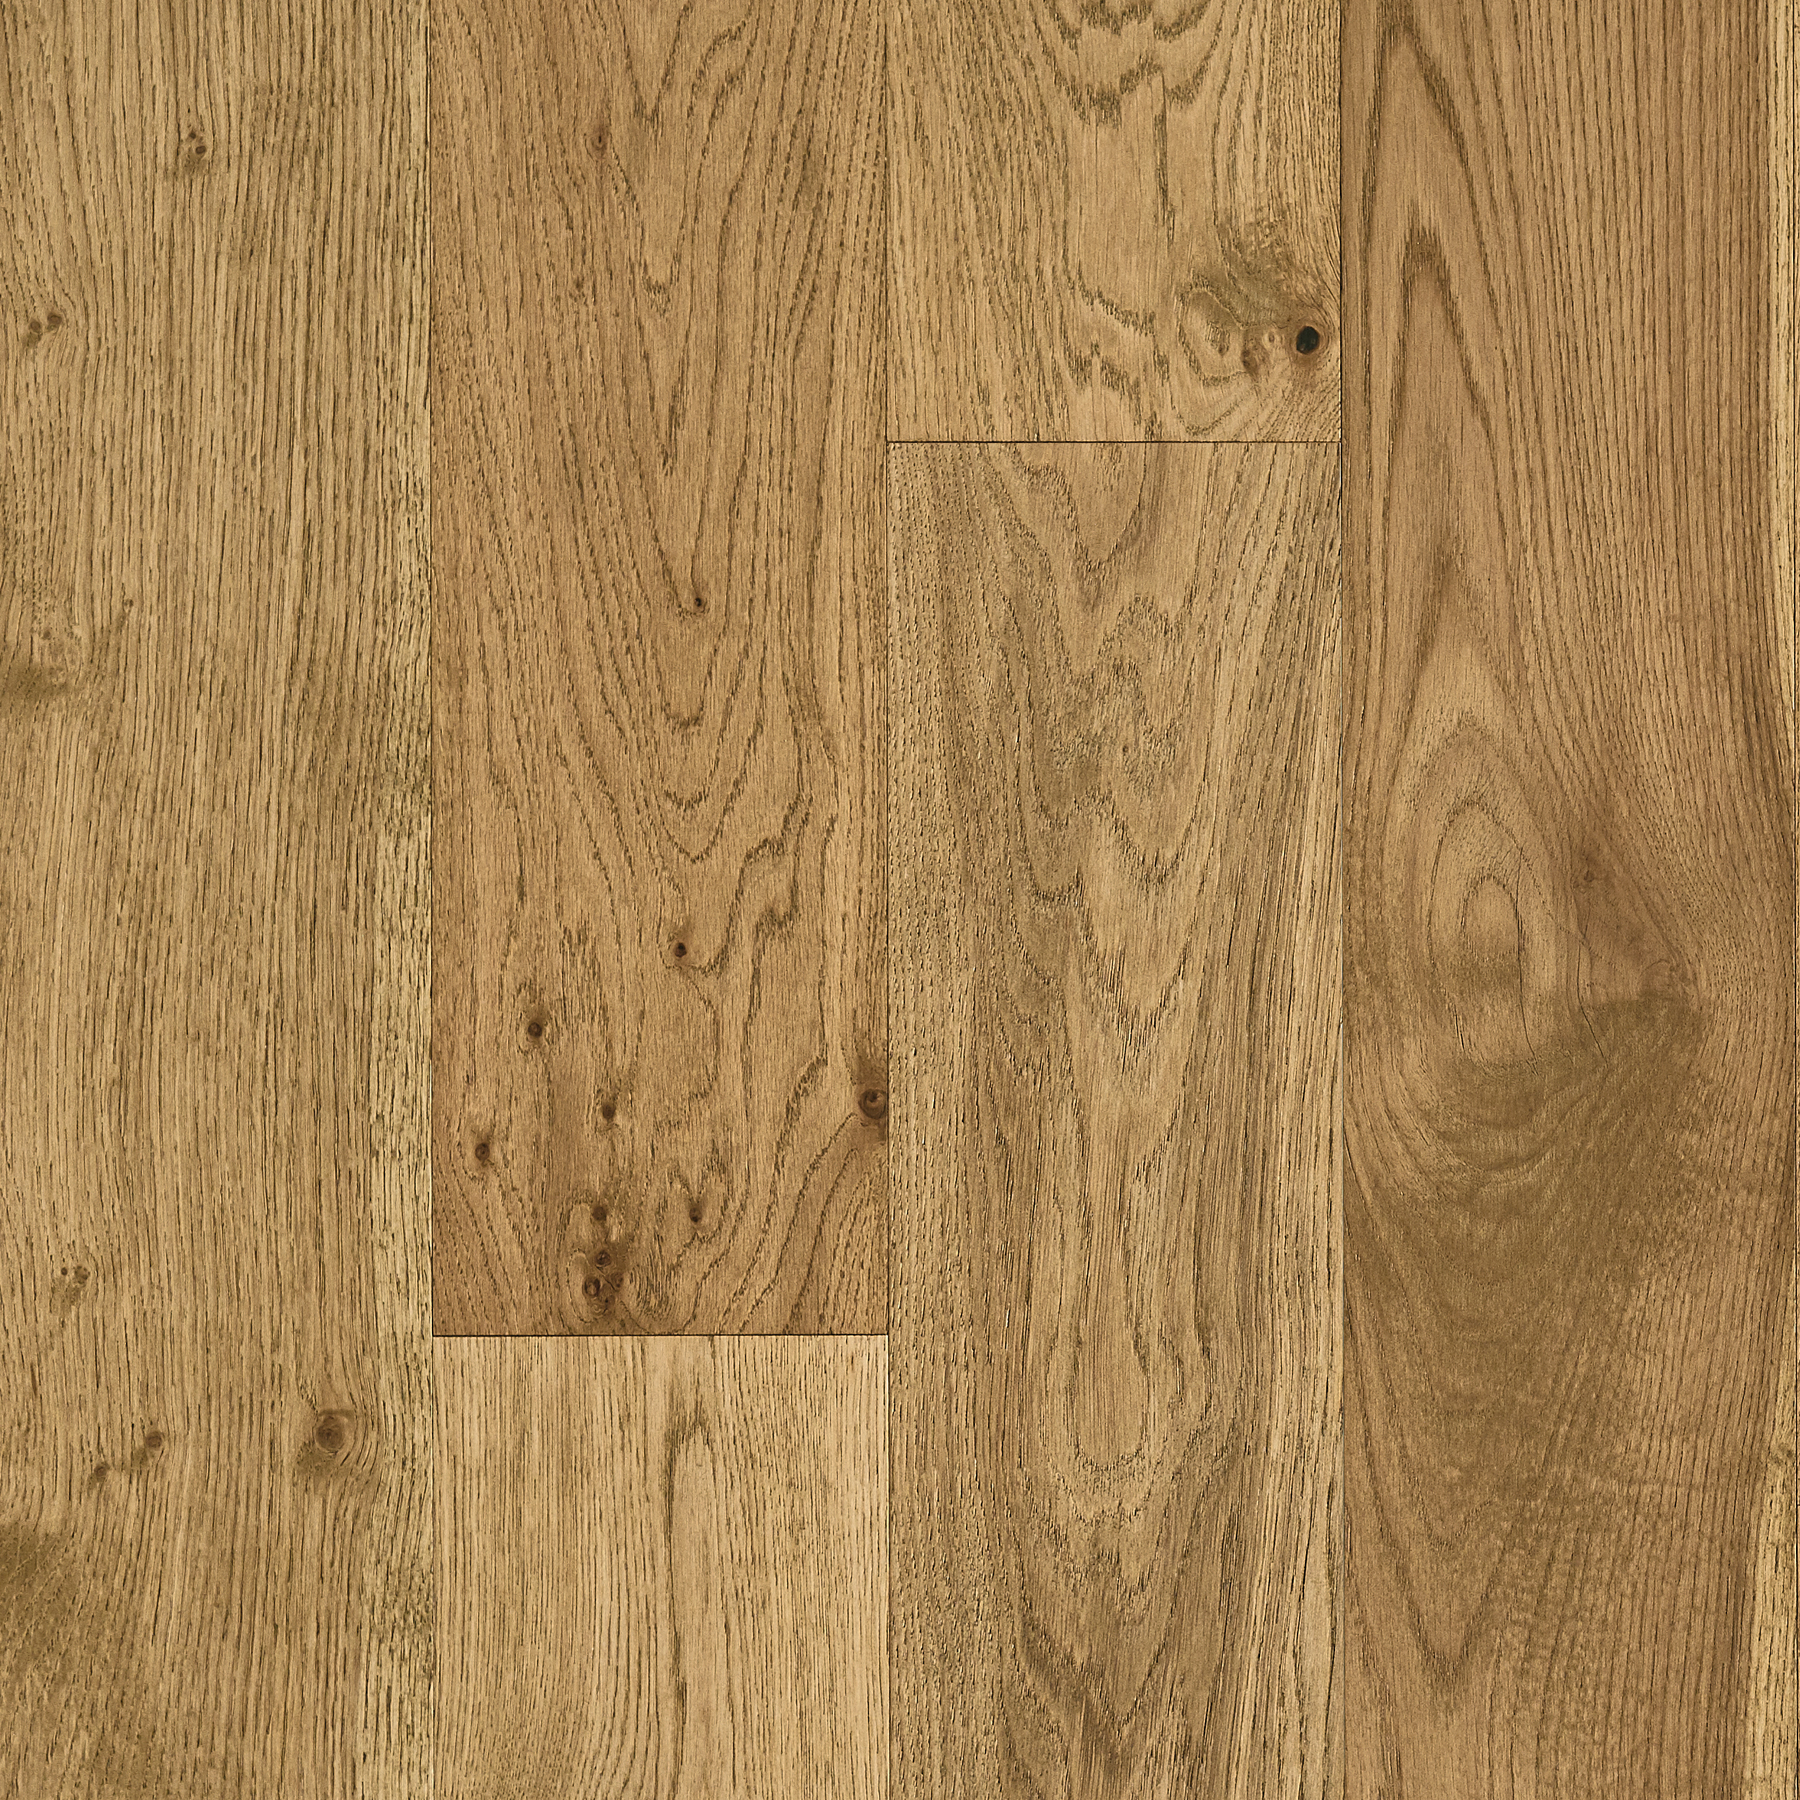 HydroBlok Serene Taupe Engineered Hardwood EKHB75L65W